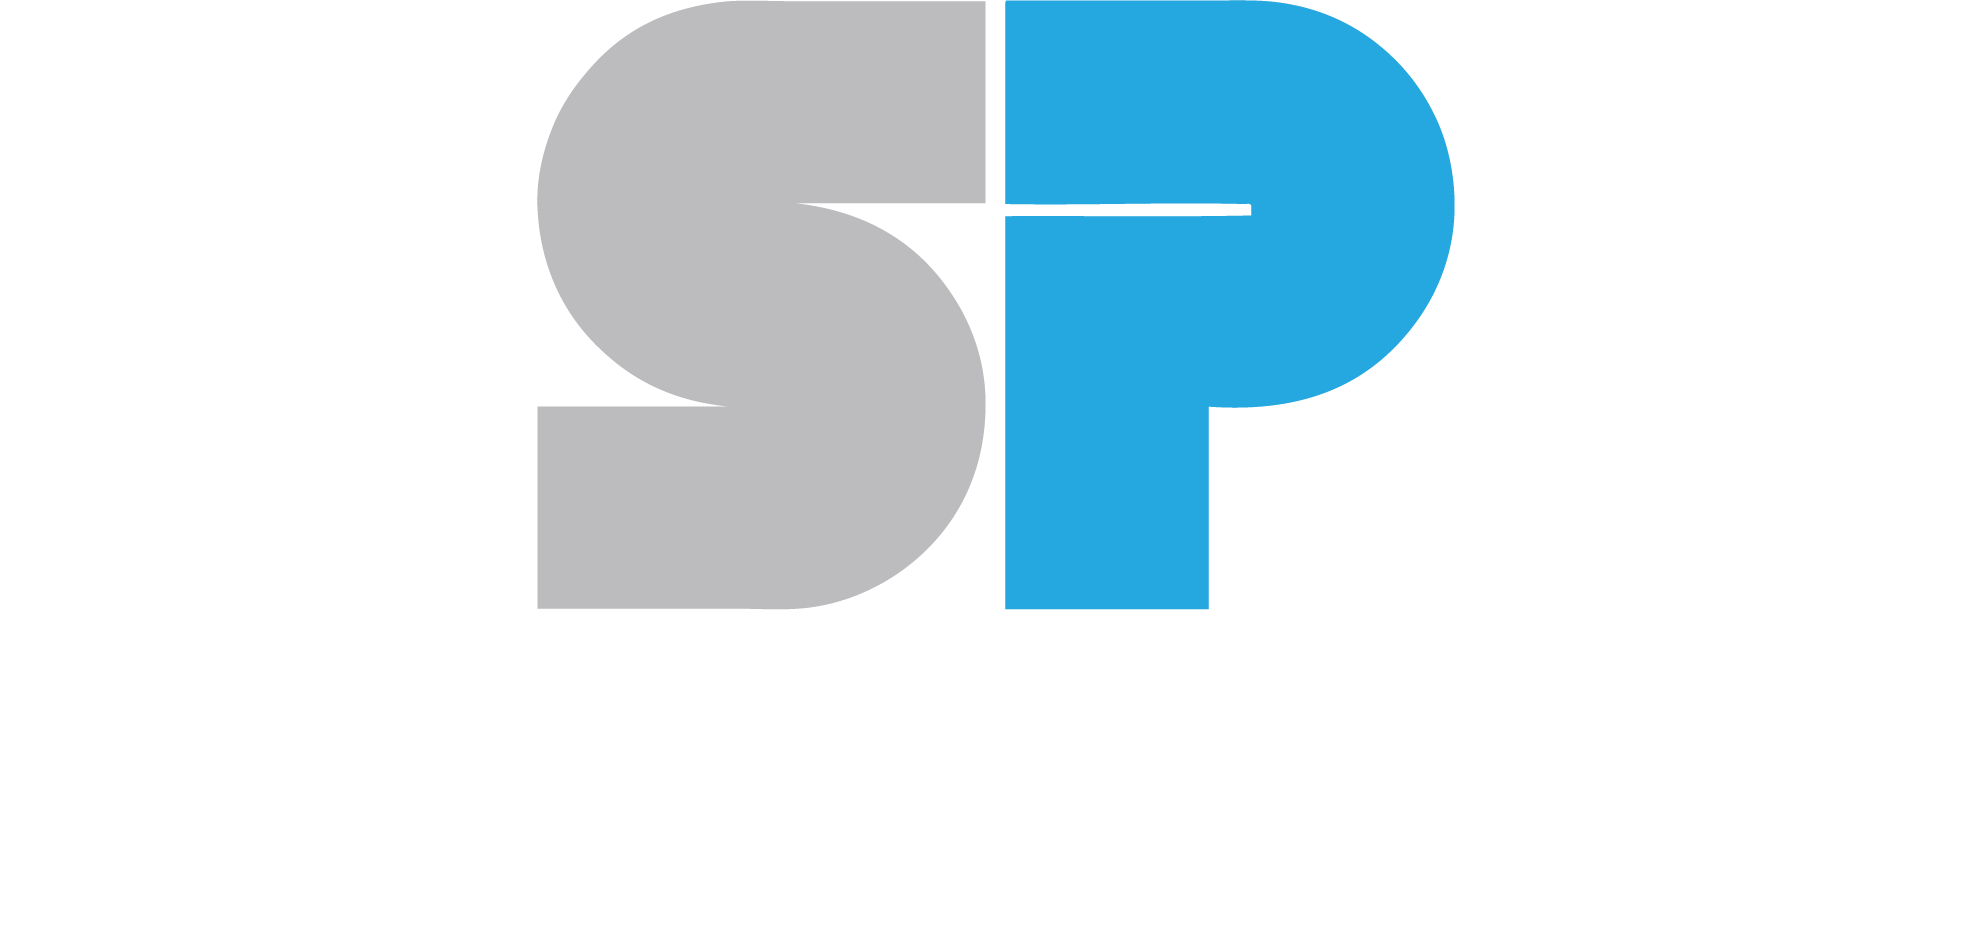 Scully Plumbing Qld Pty Ltd